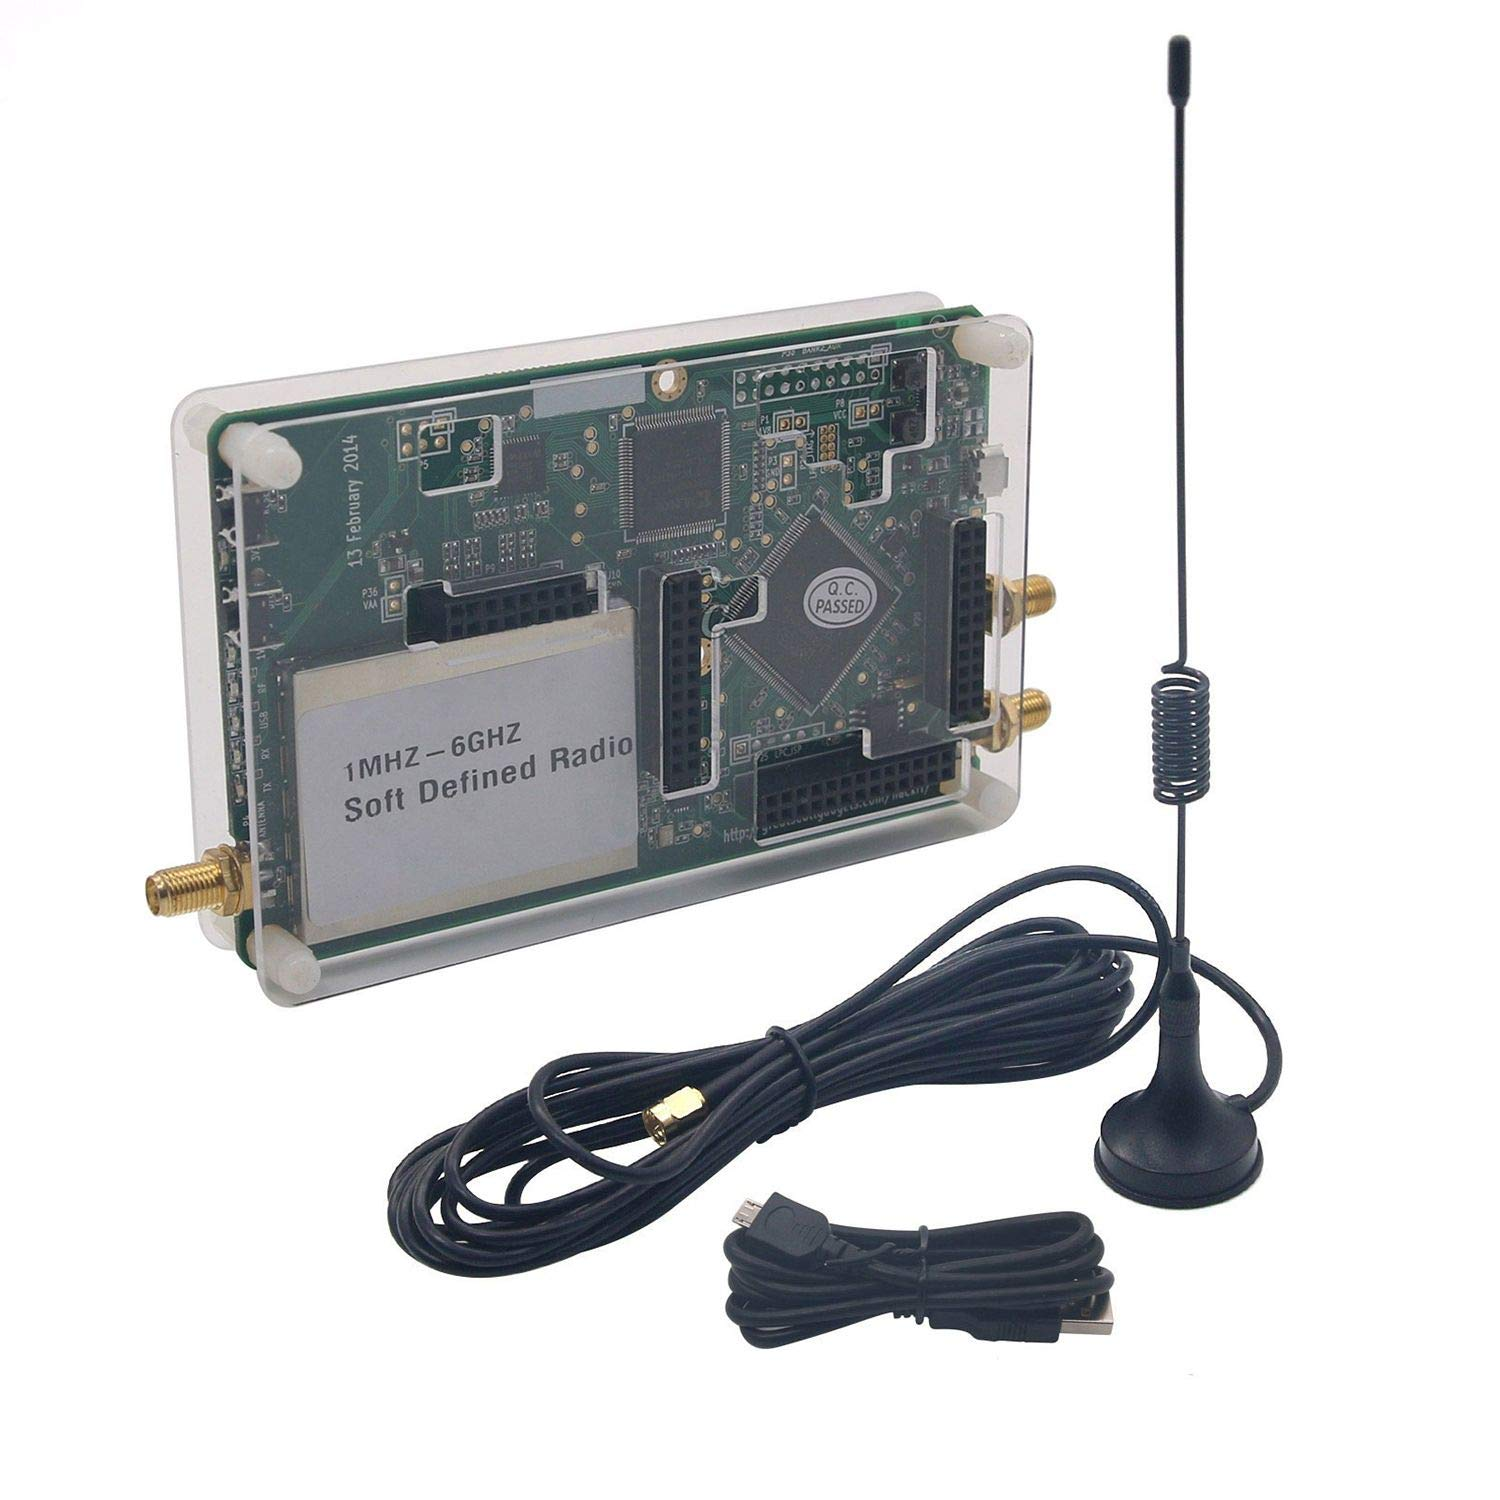 Semoic 1MHz-6GHz SDR Platform Software Defined Radio Development Board